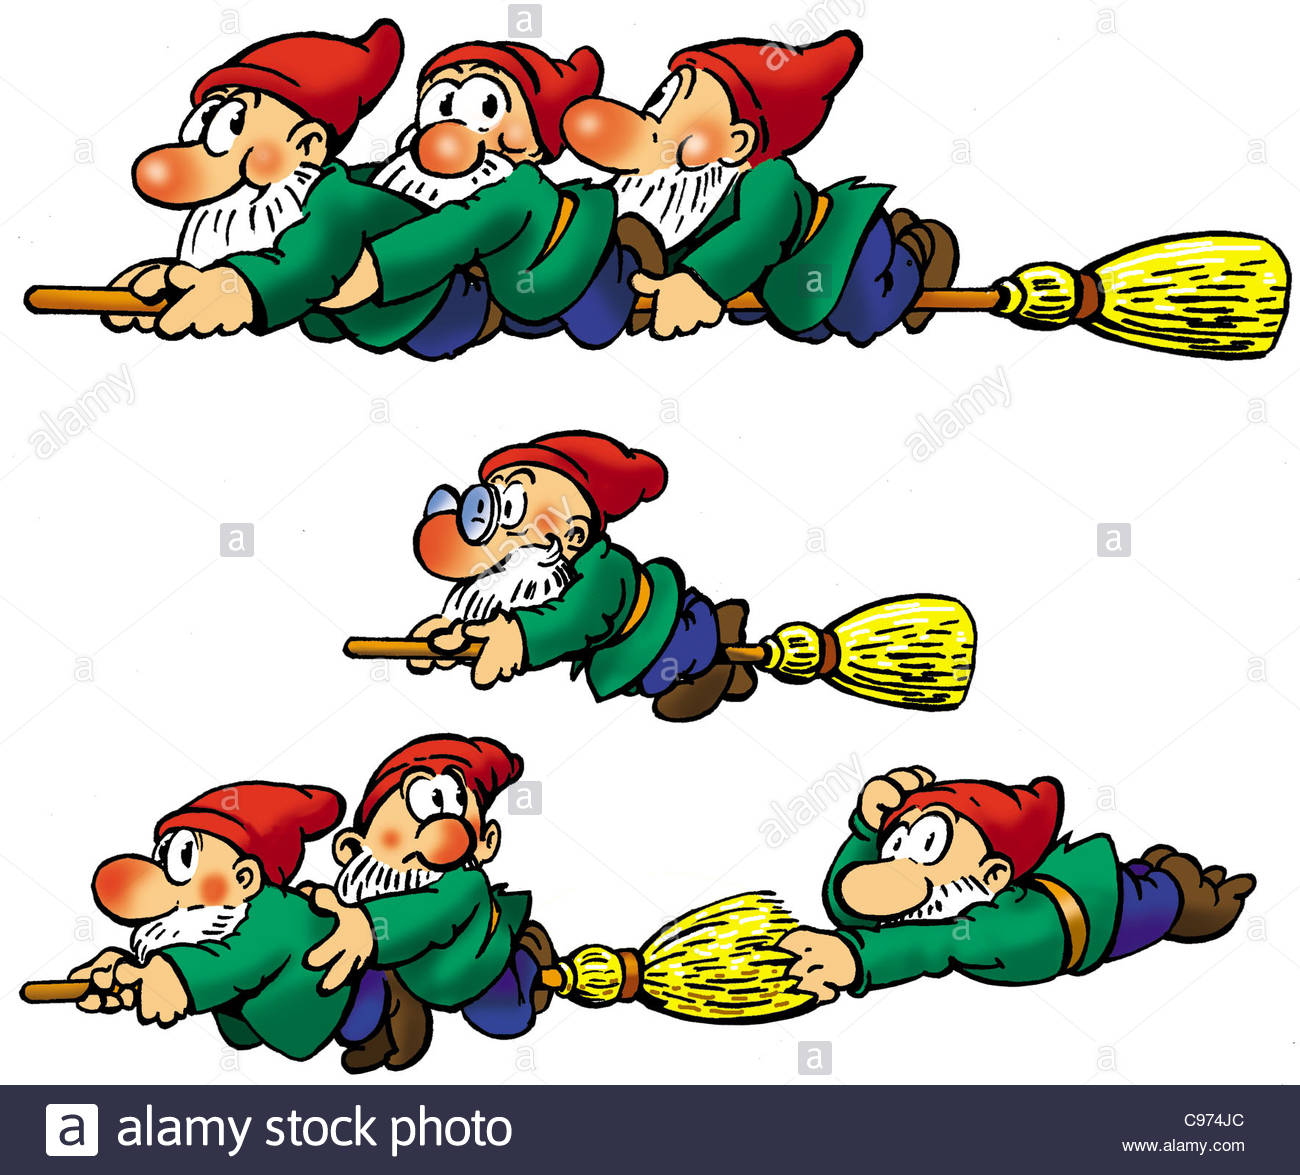 Witch Troll Stock Photos & Witch Troll Stock Images - Alamy